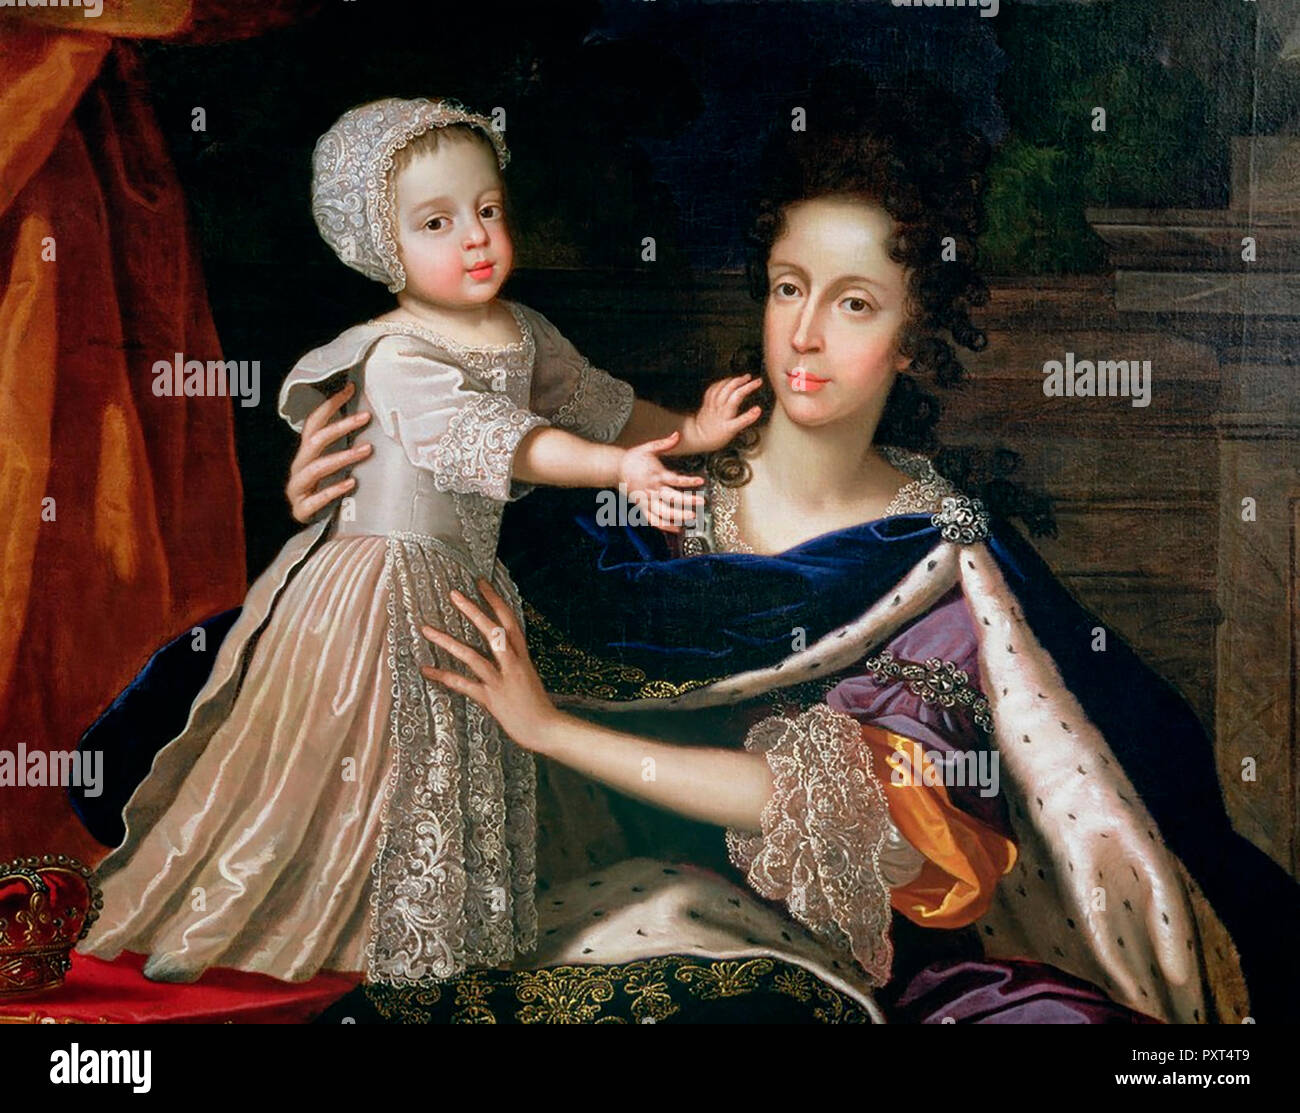 James III and Mary of Modena -Queen wife of James II, with her only son, James III, the Jacobite Pretender.  Benedetto Gennari II, circa 1690 - Stock Image